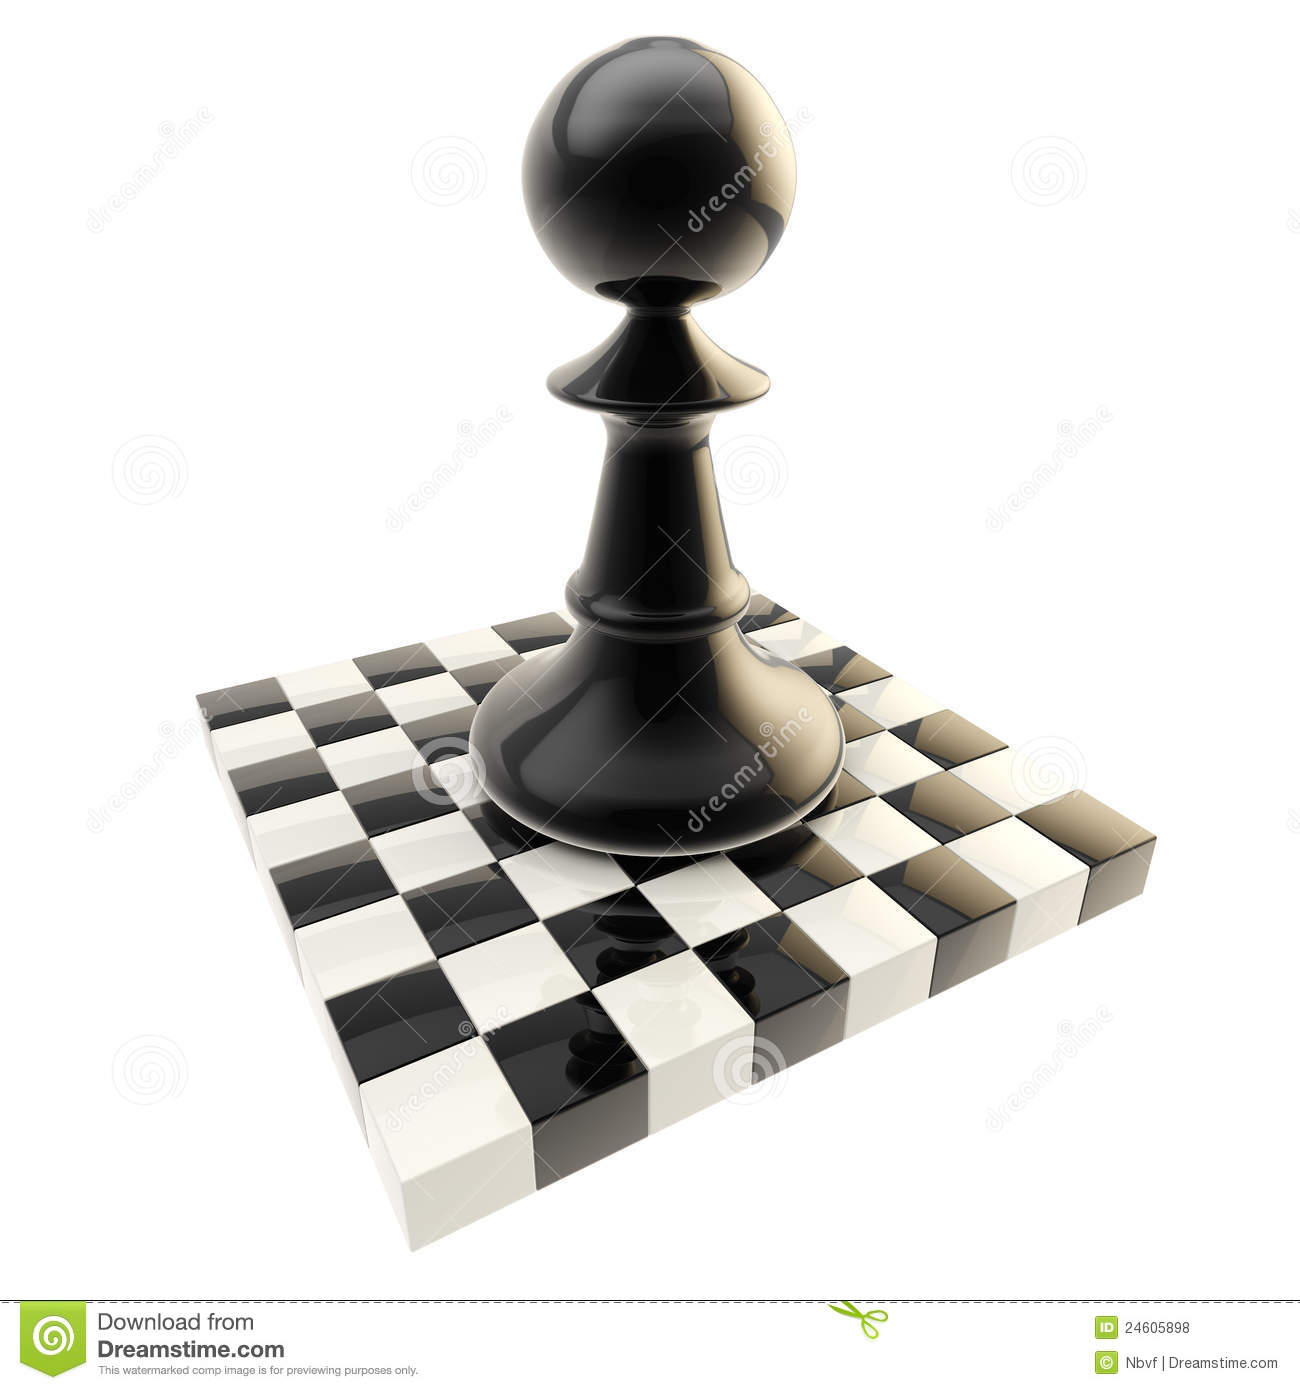 free illustration chessboard render - photo #13